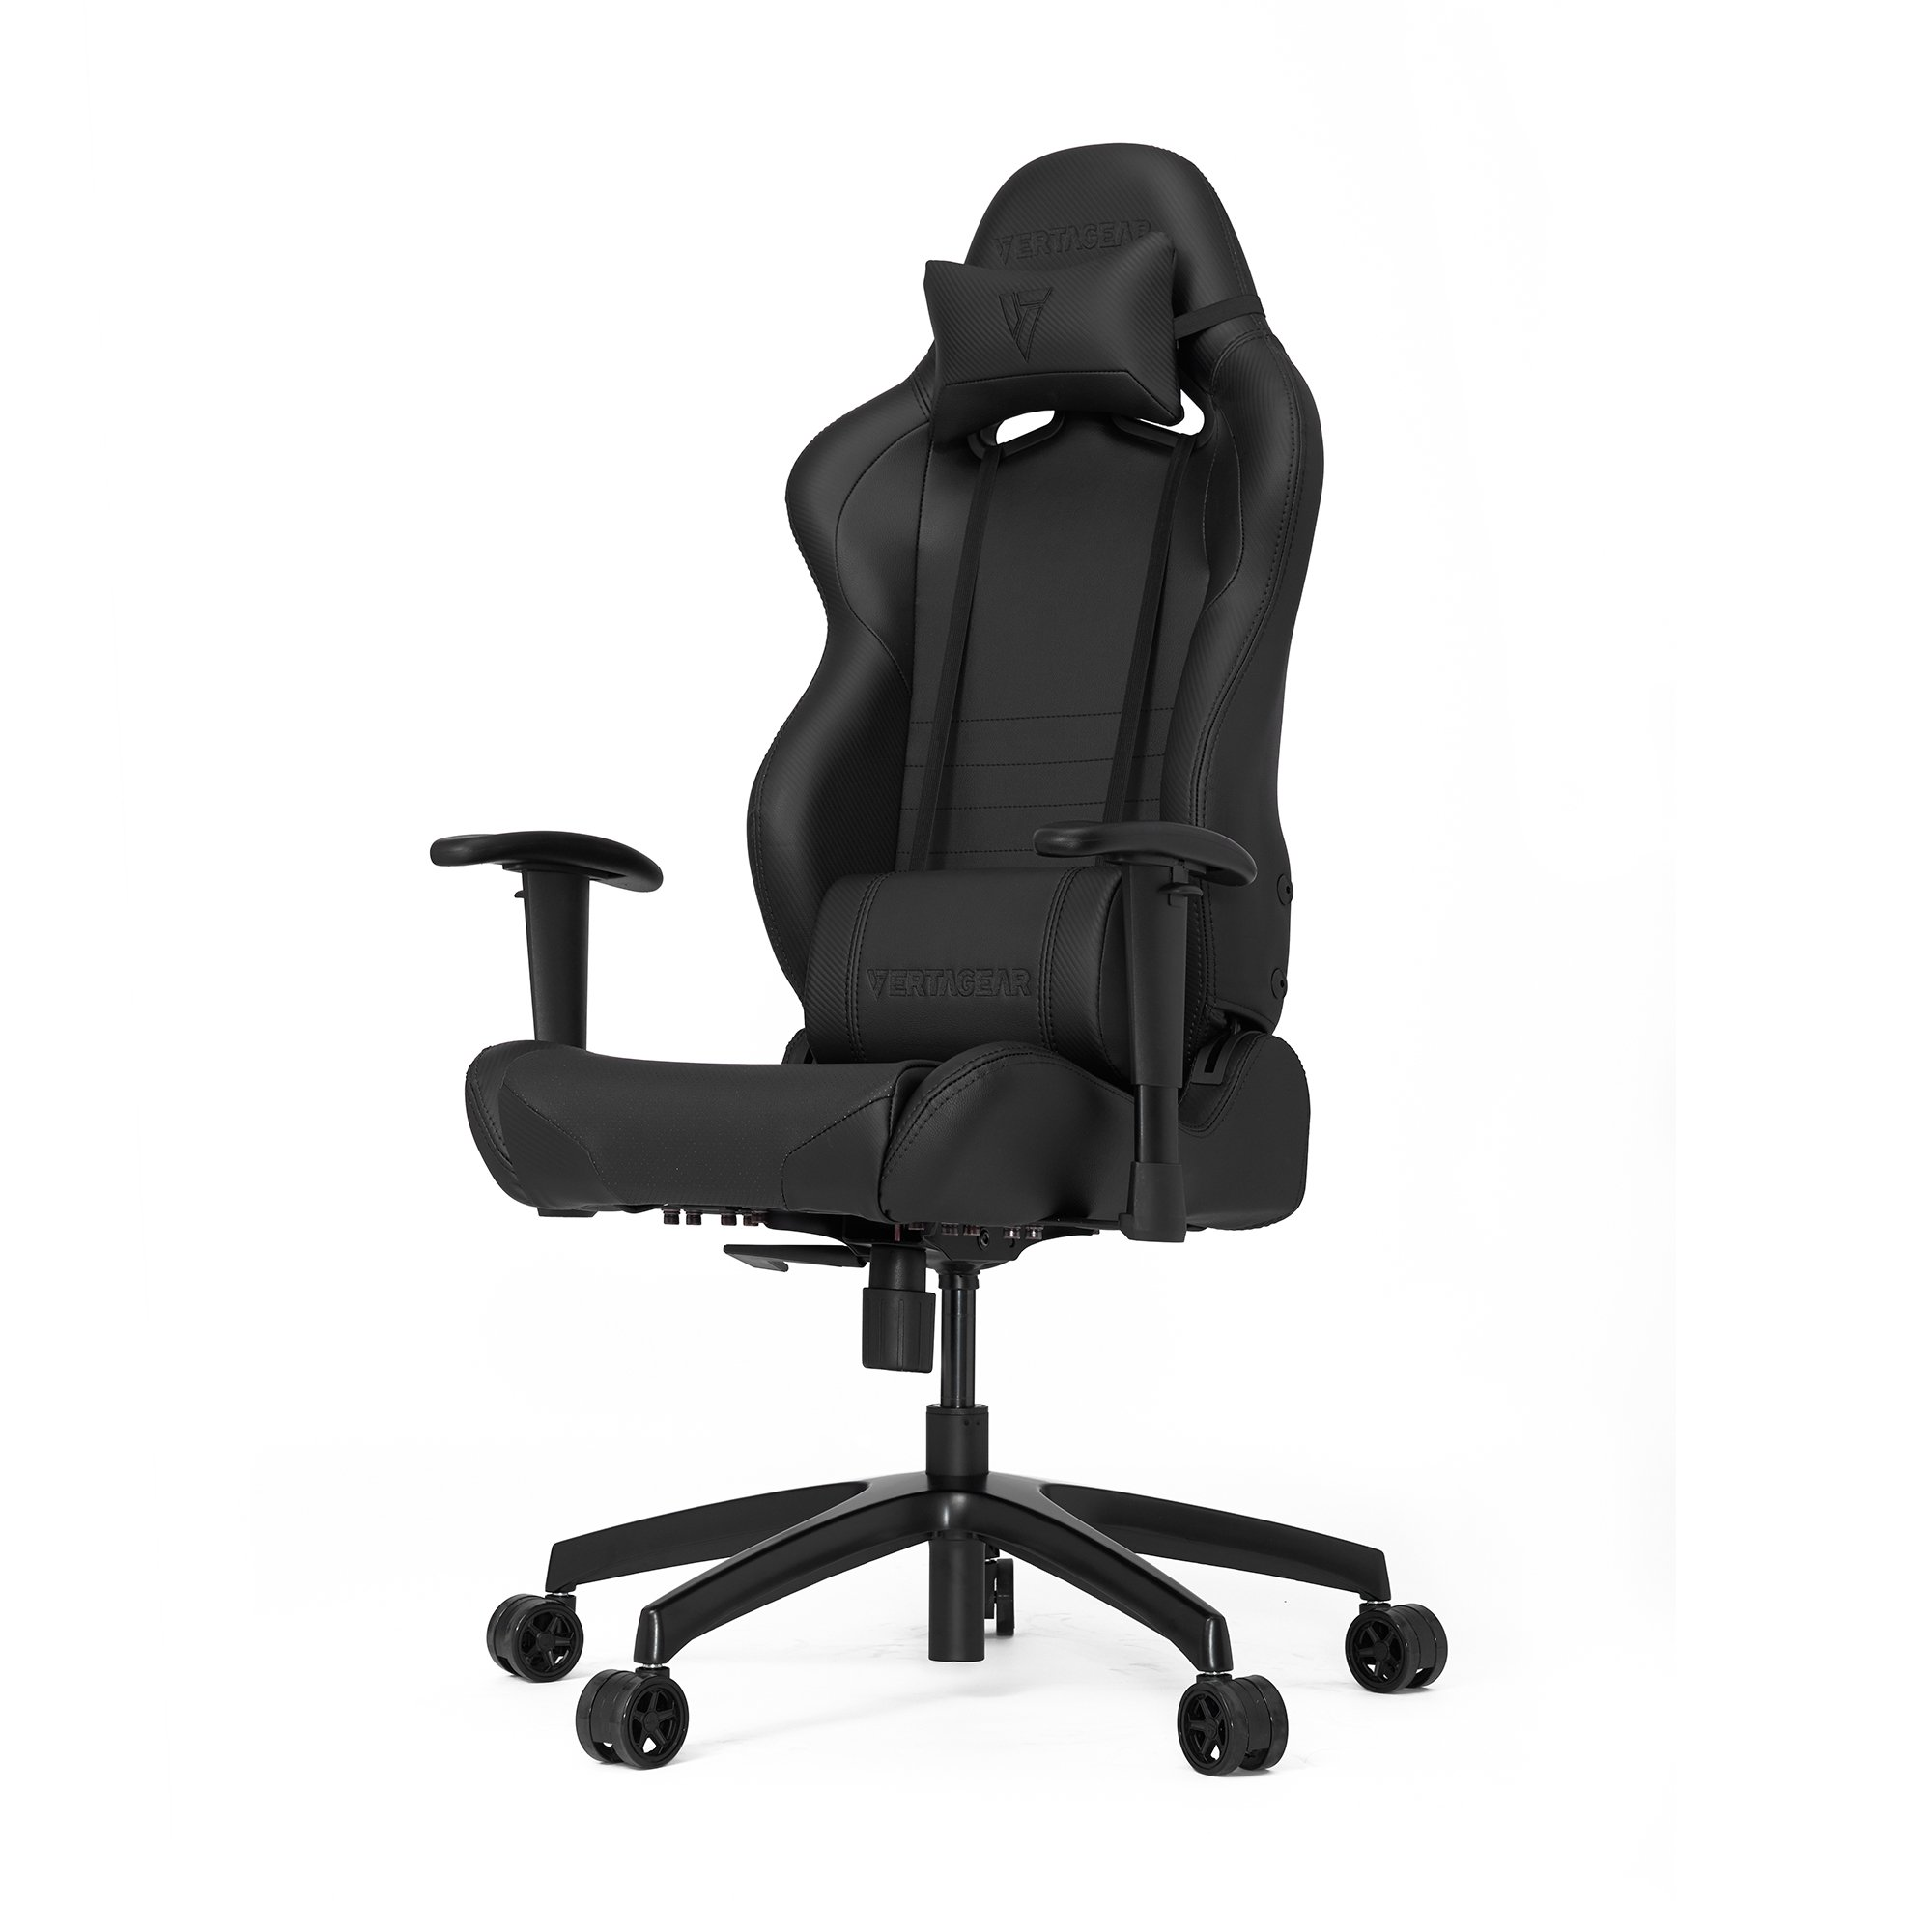 VERTAGEAR S-Line SL2000 Gaming Chair Black/Carbon Edition by VERTAGEAR